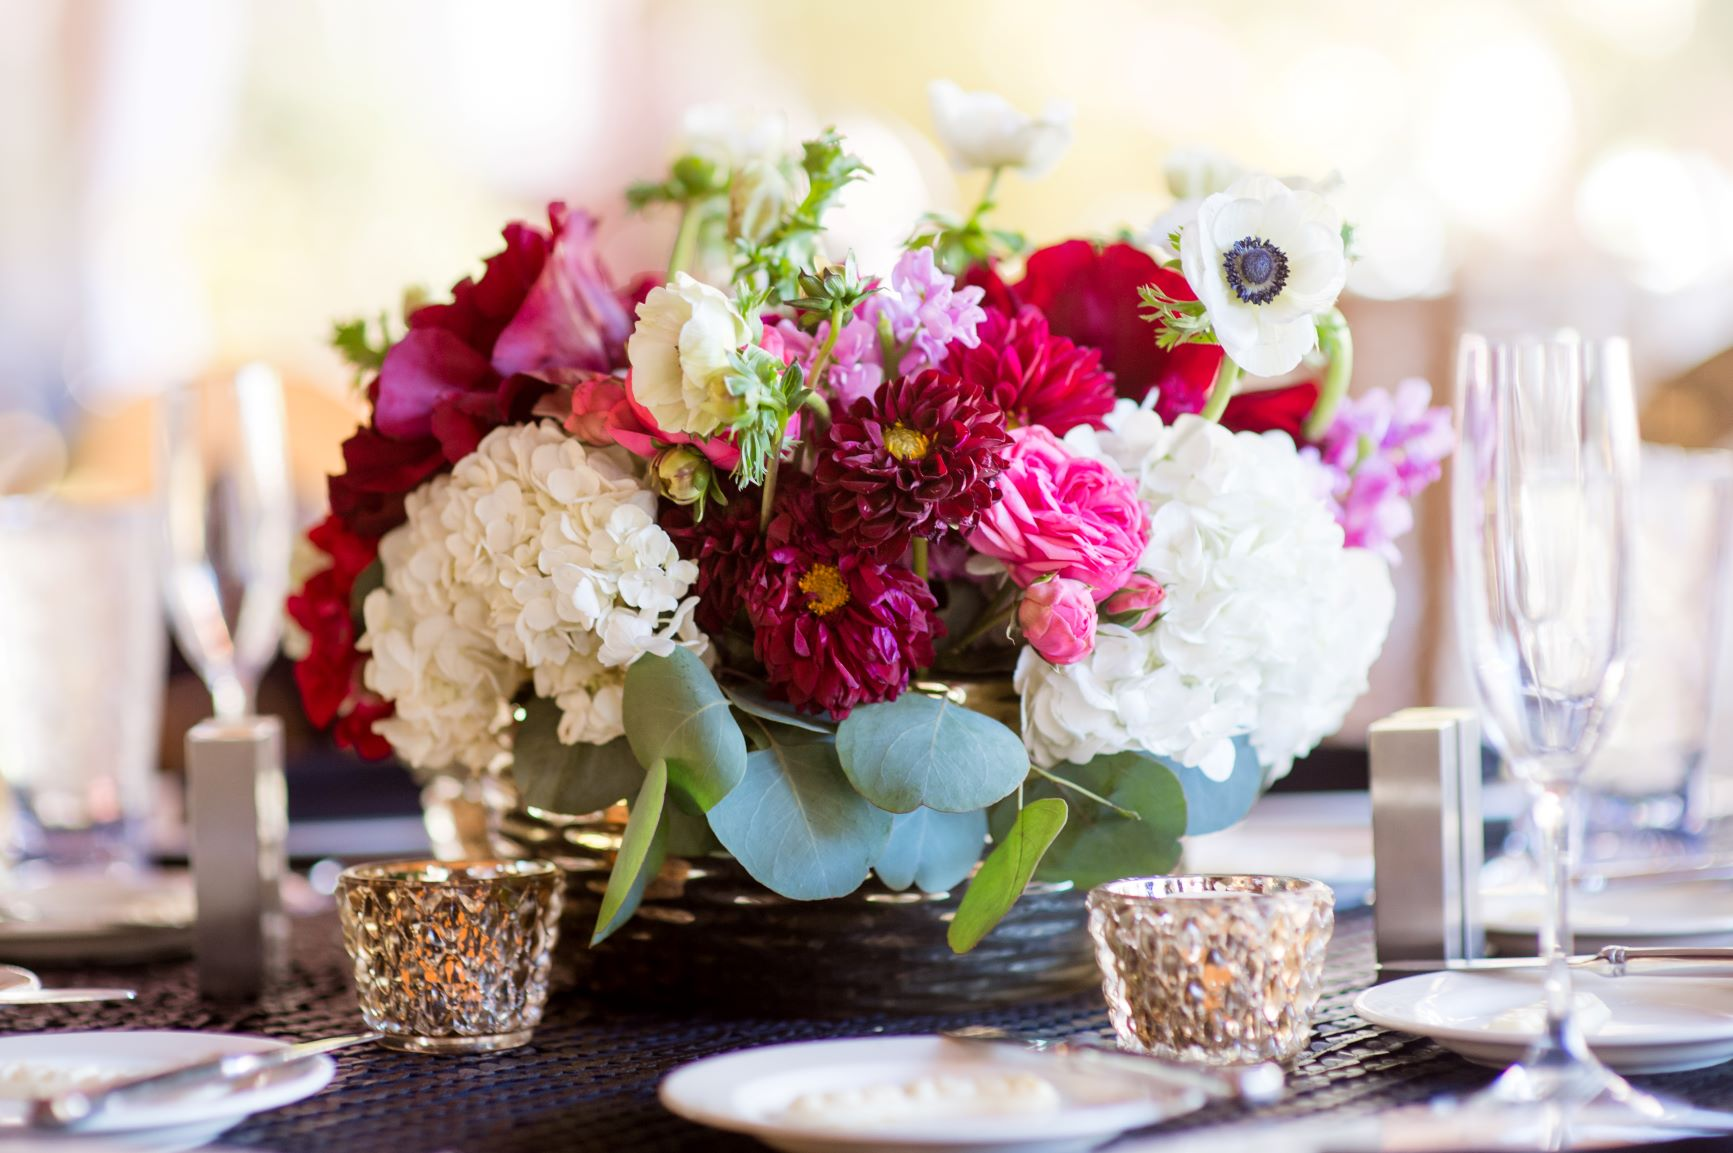 Centerpiece with white and maroon flowers